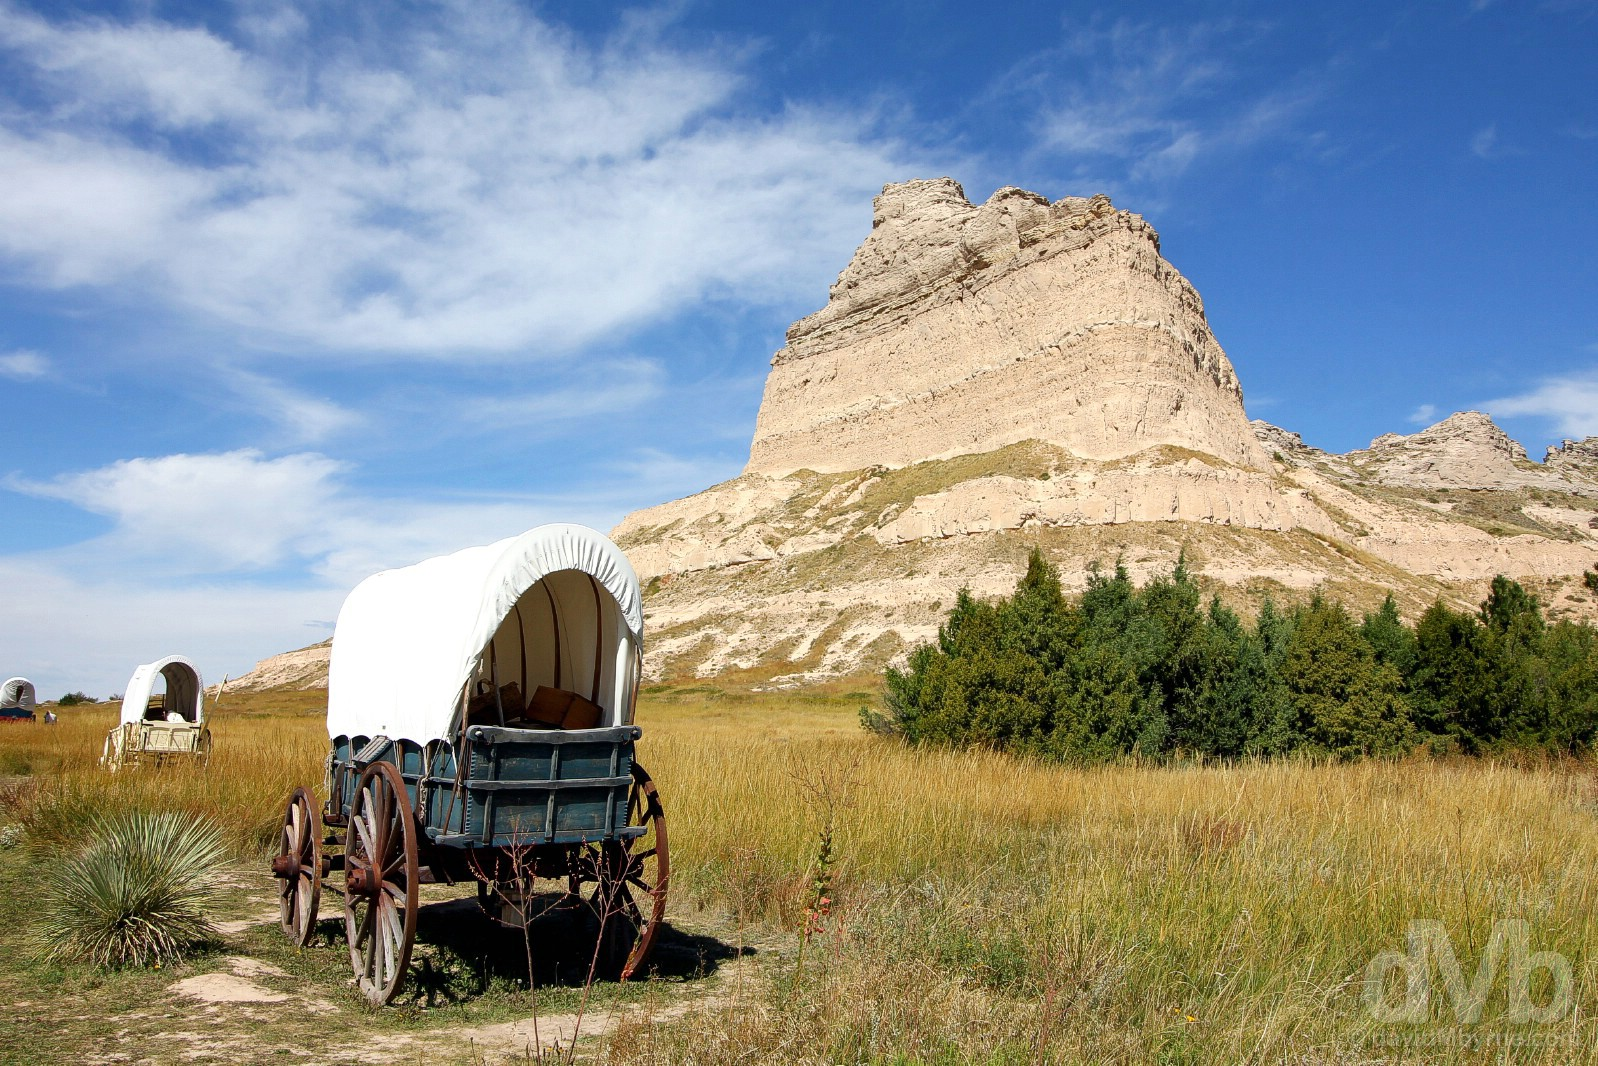 Scotts Bluff National Monument, Scotts Bluff County, western Nebraska, USA. September 15, 2016.